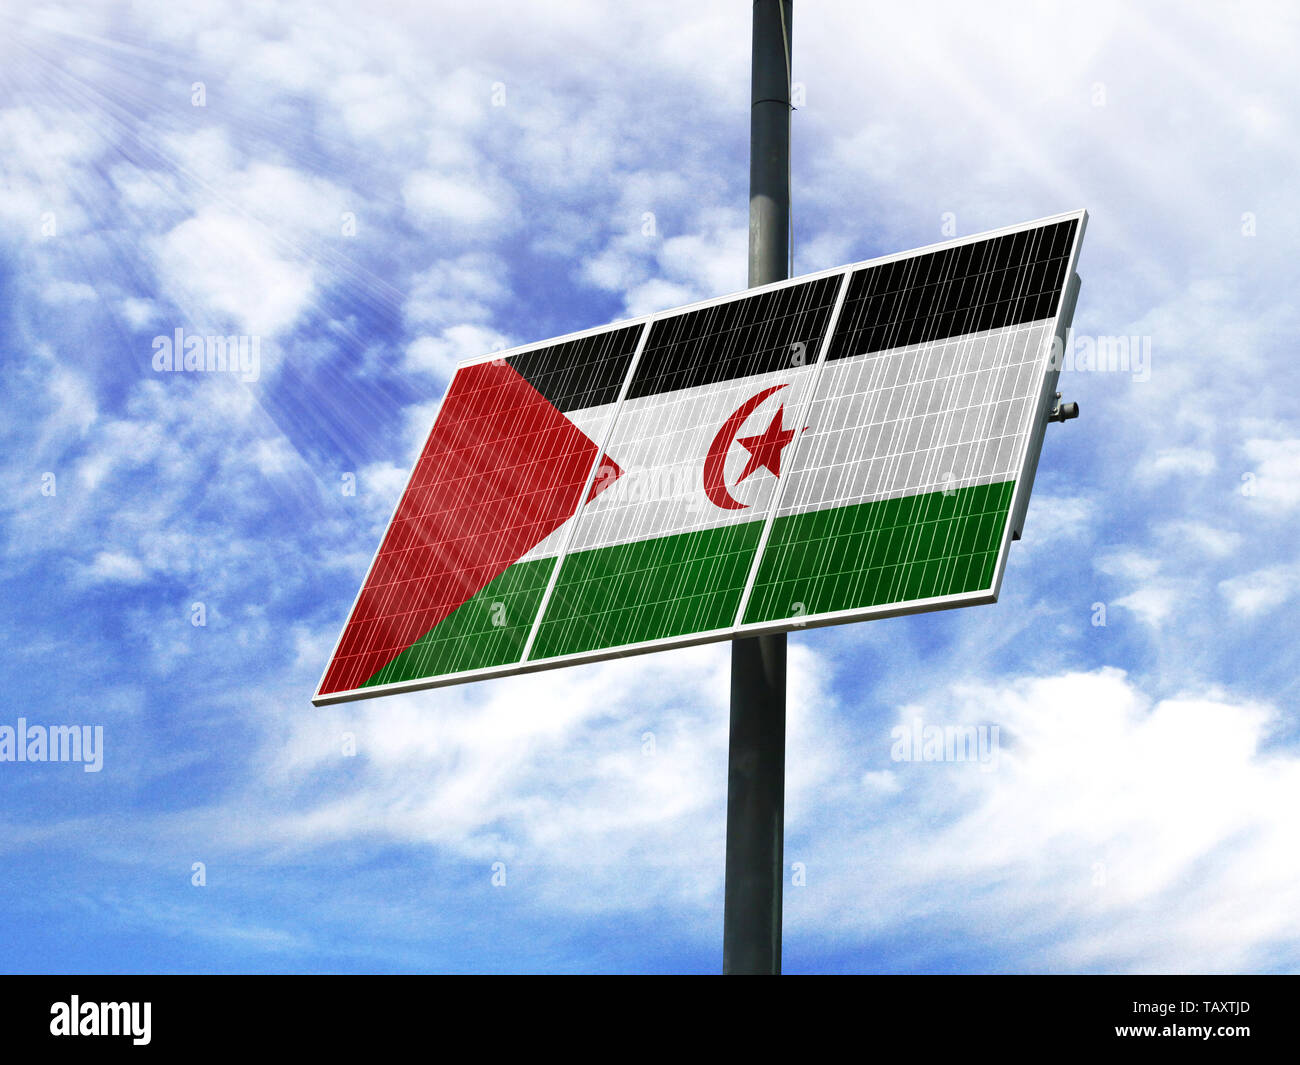 Solar panels against a blue sky with a picture of the flag of Western Sahara - Stock Image